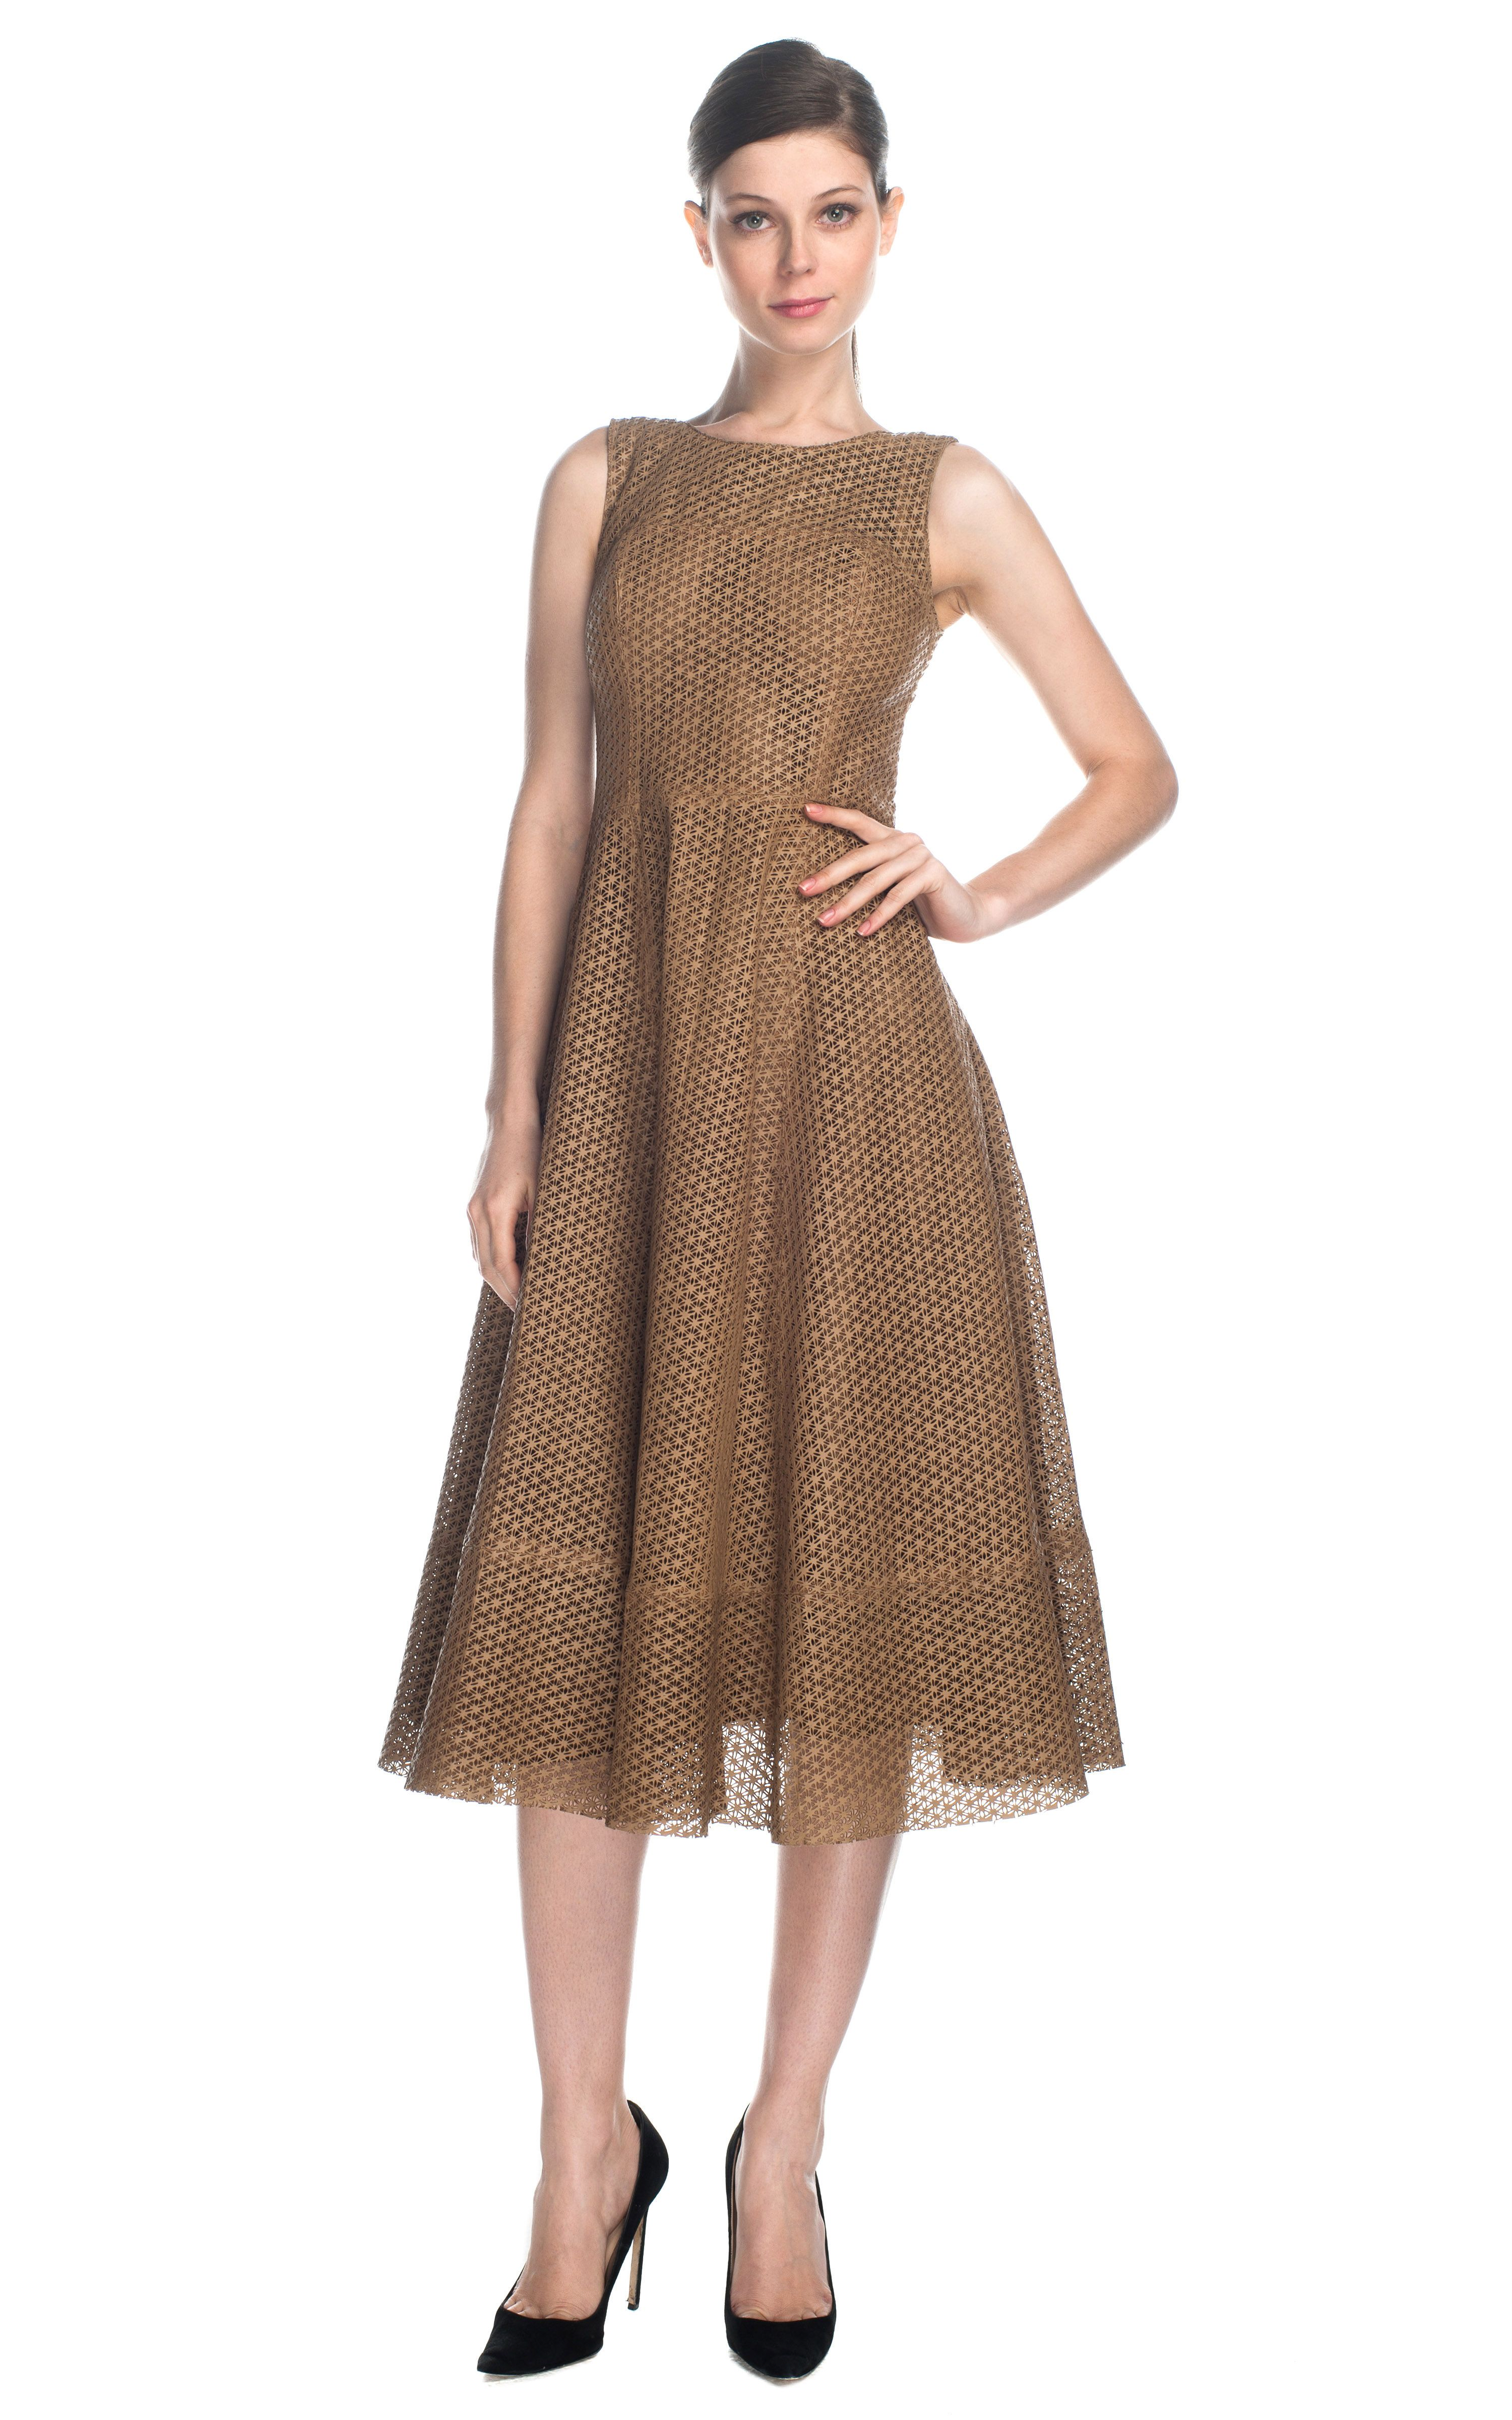 Patrícia viera laser cut hive leather dress brown variations